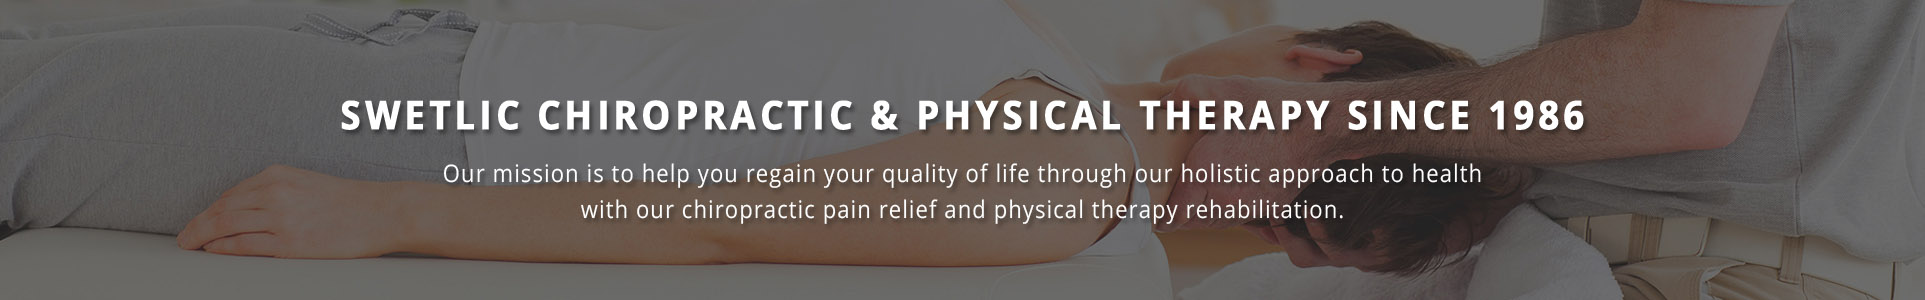 Swetlic Chiropractic & Physical Therapy